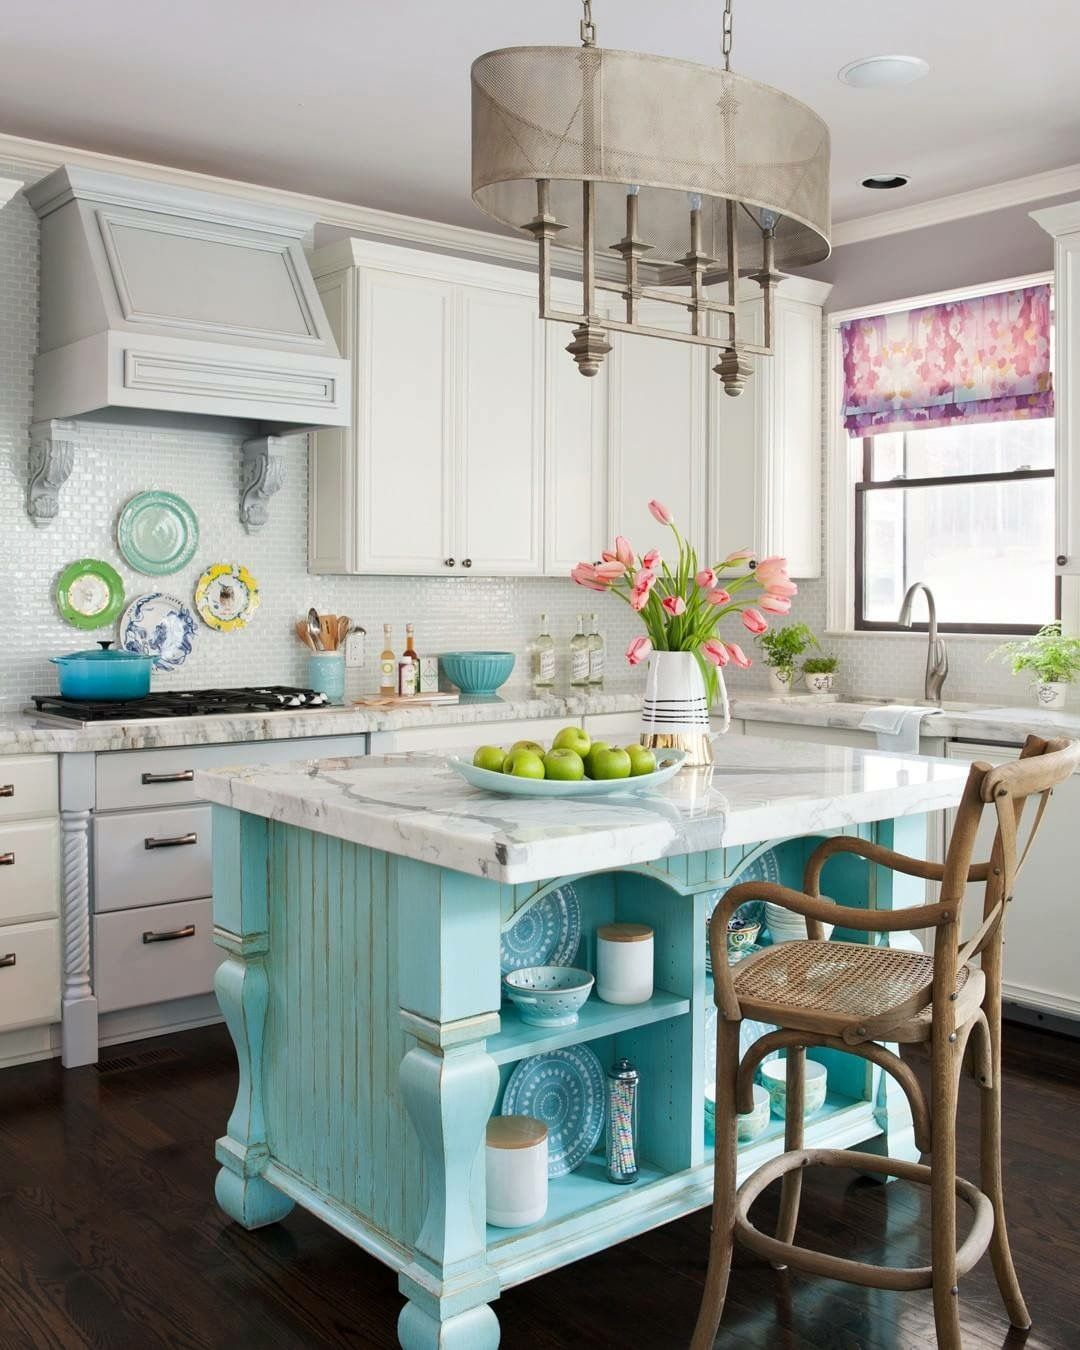 Pin by Jessica Hanson on For the Home Kitchen